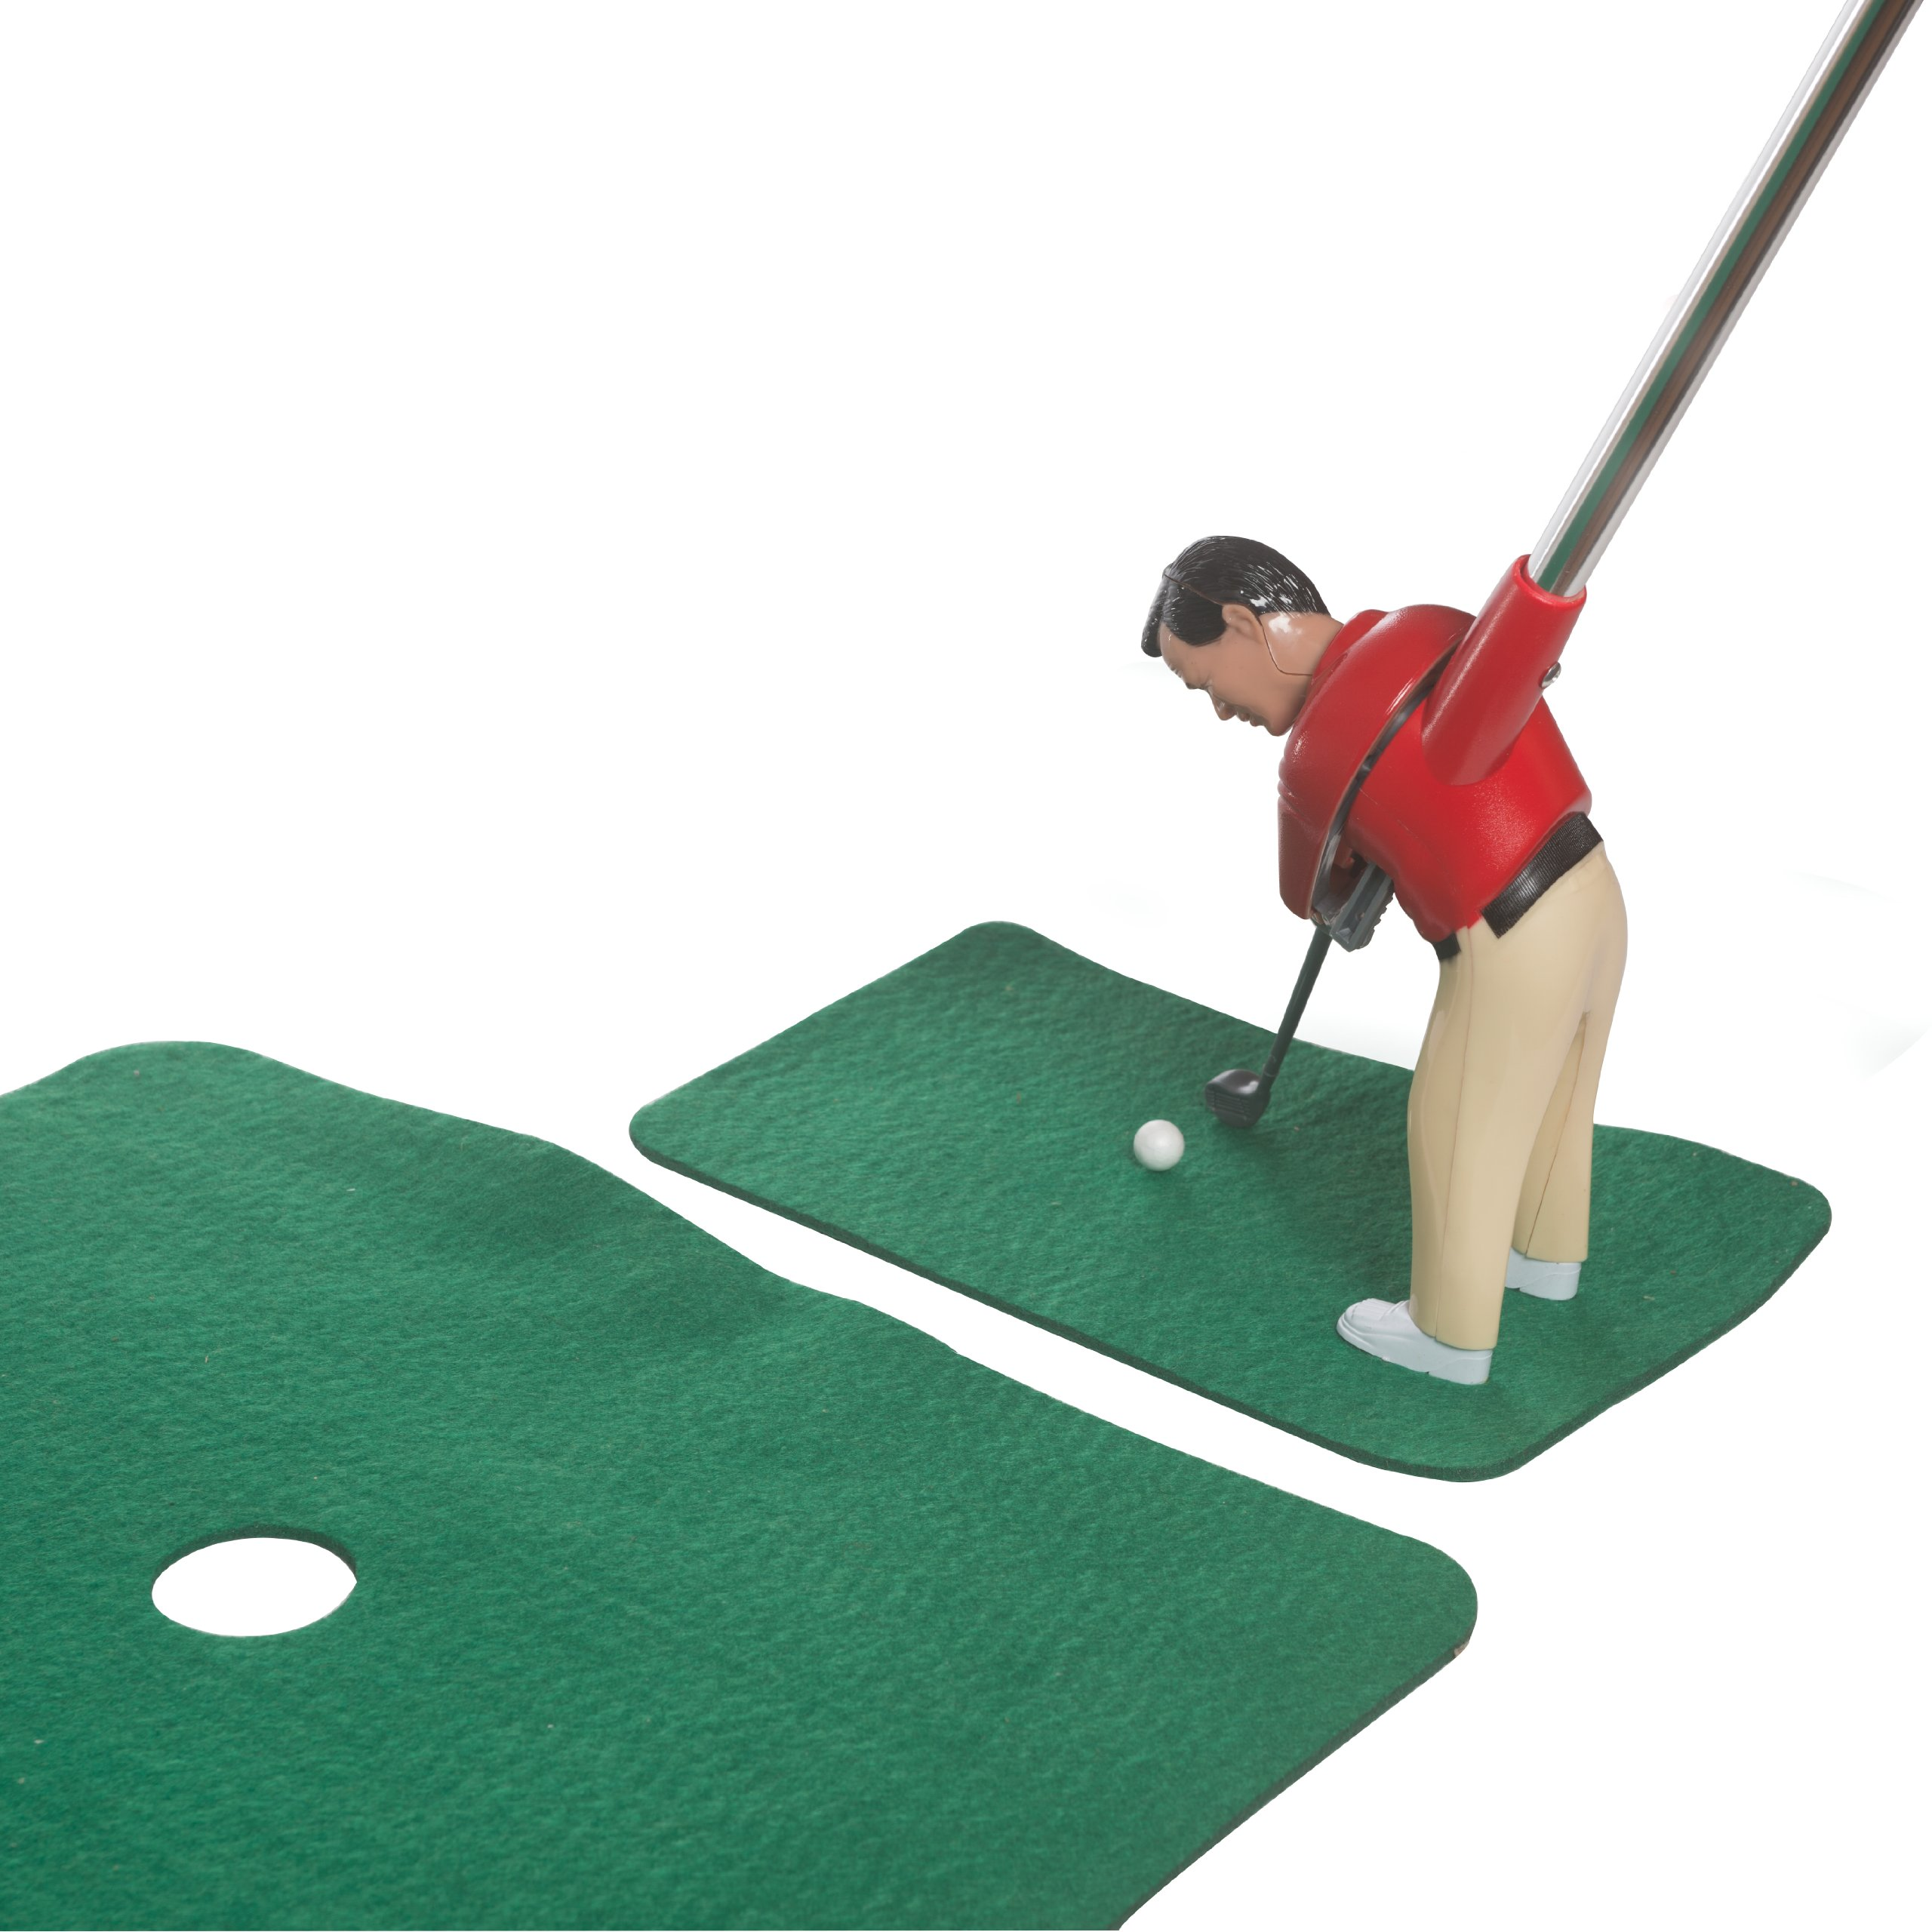 Game Room Golf-- Contents Include Golfer Club, Flag, Tee Box, 12 Balls, Putting Green!!